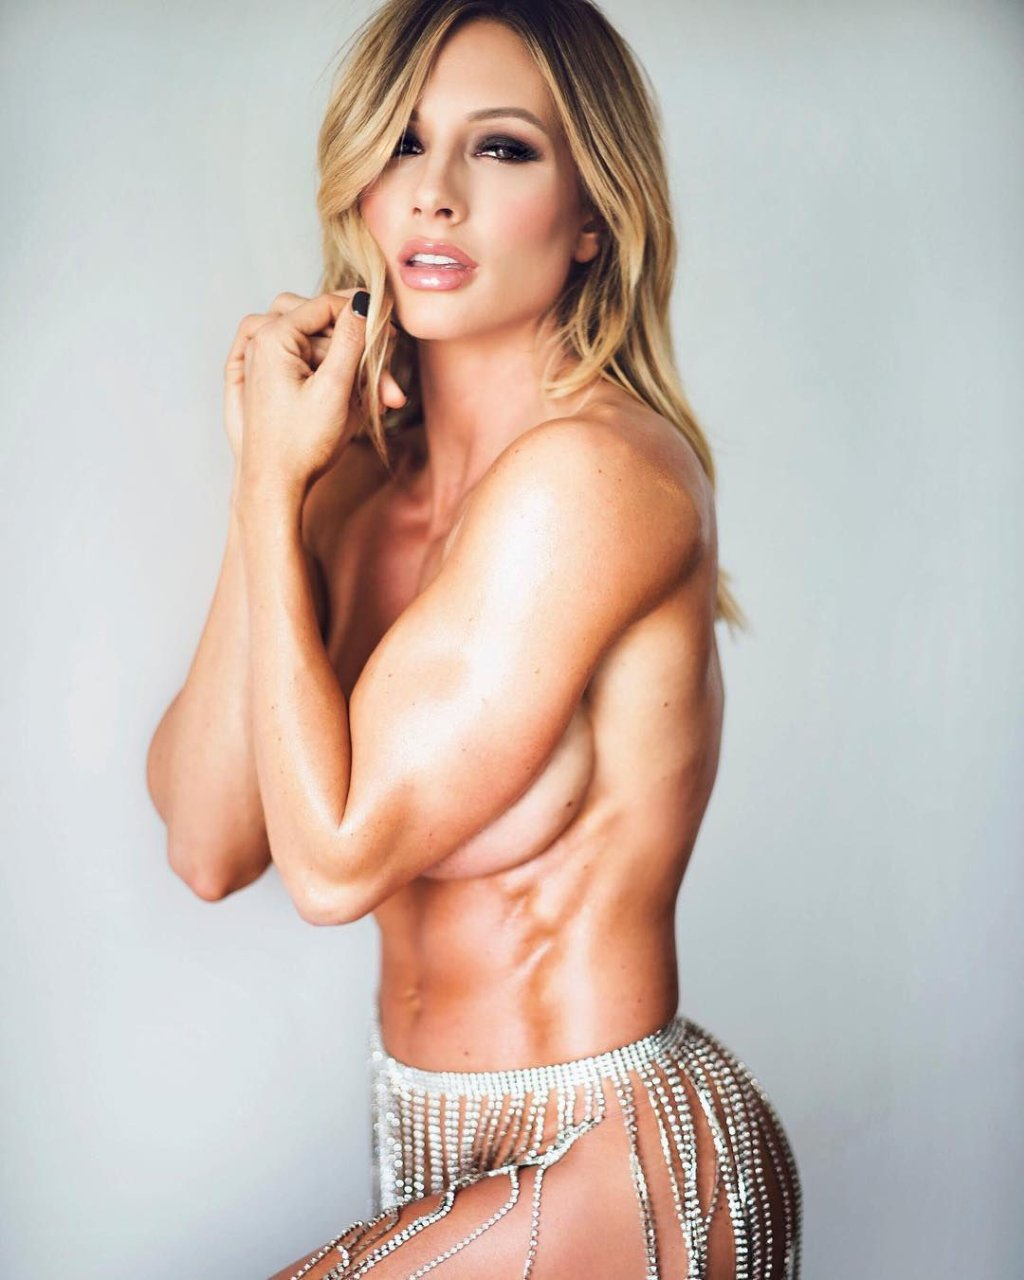 Paige hathaway topless